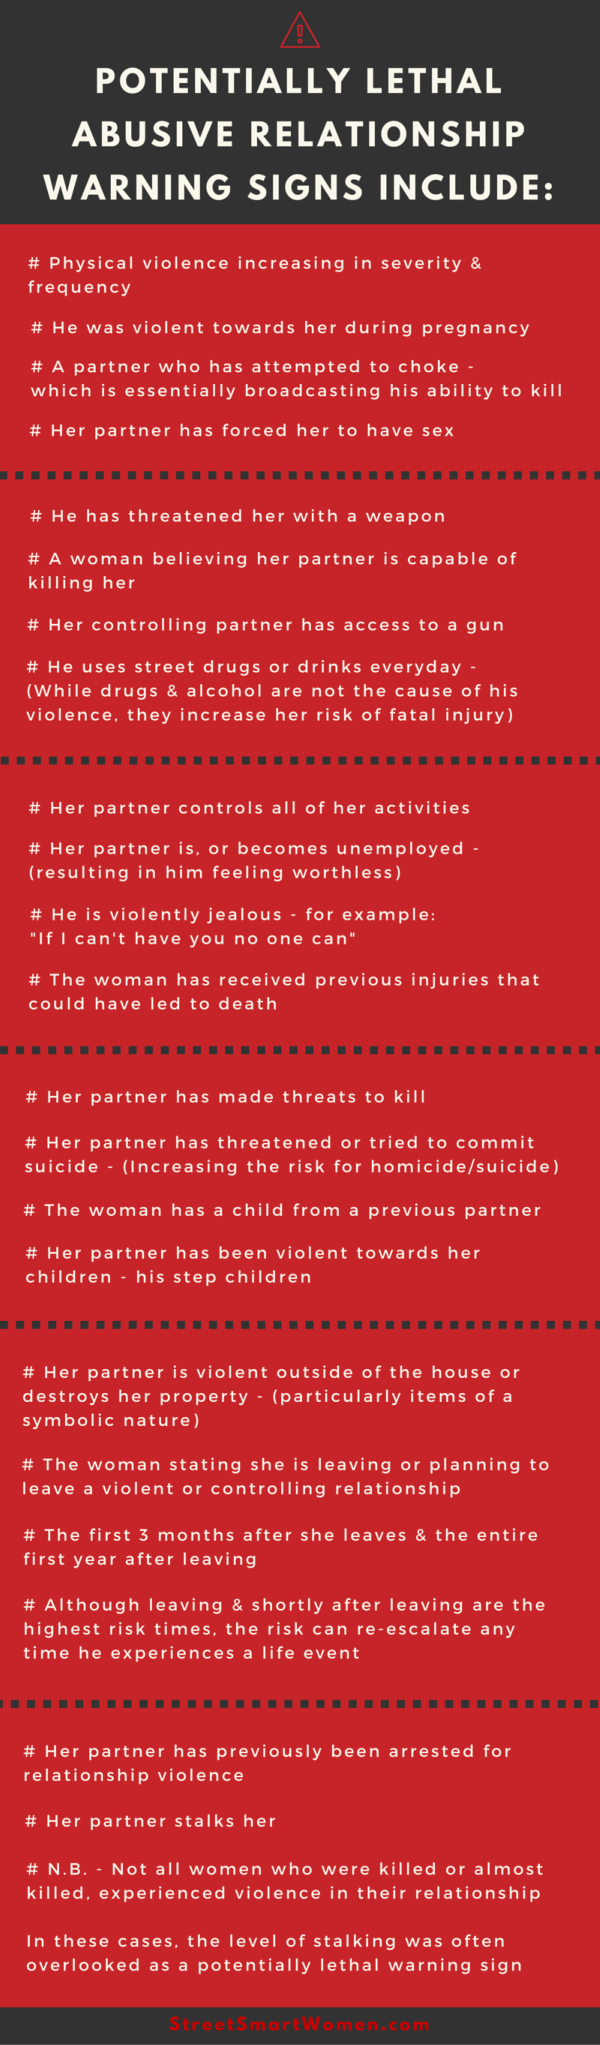 intimate partner abuse and relationship violence scenarios